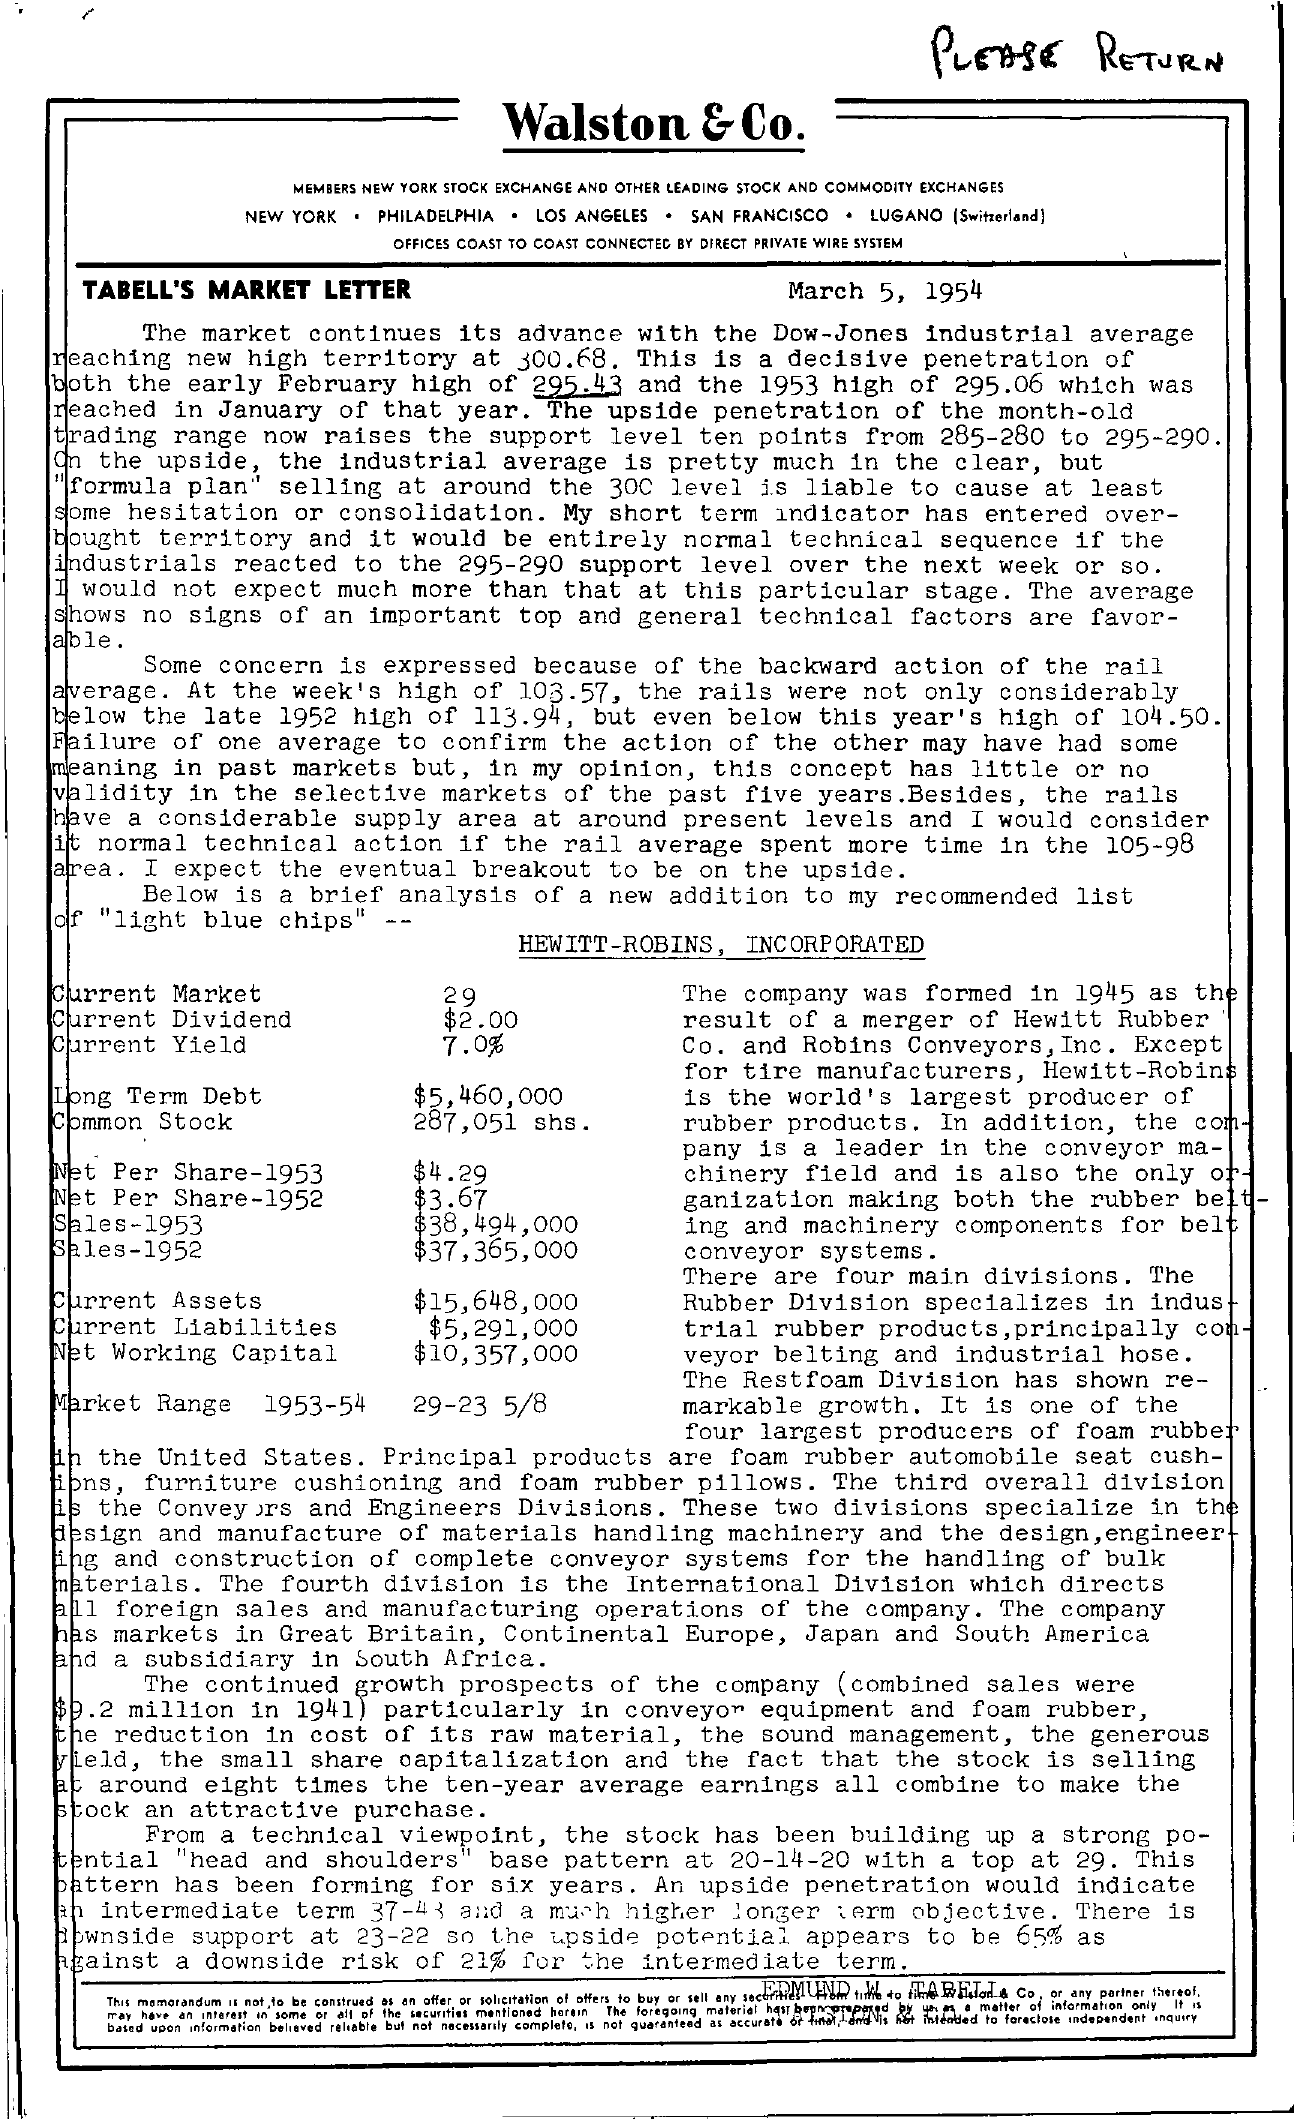 Tabell's Market Letter - March 05, 1954